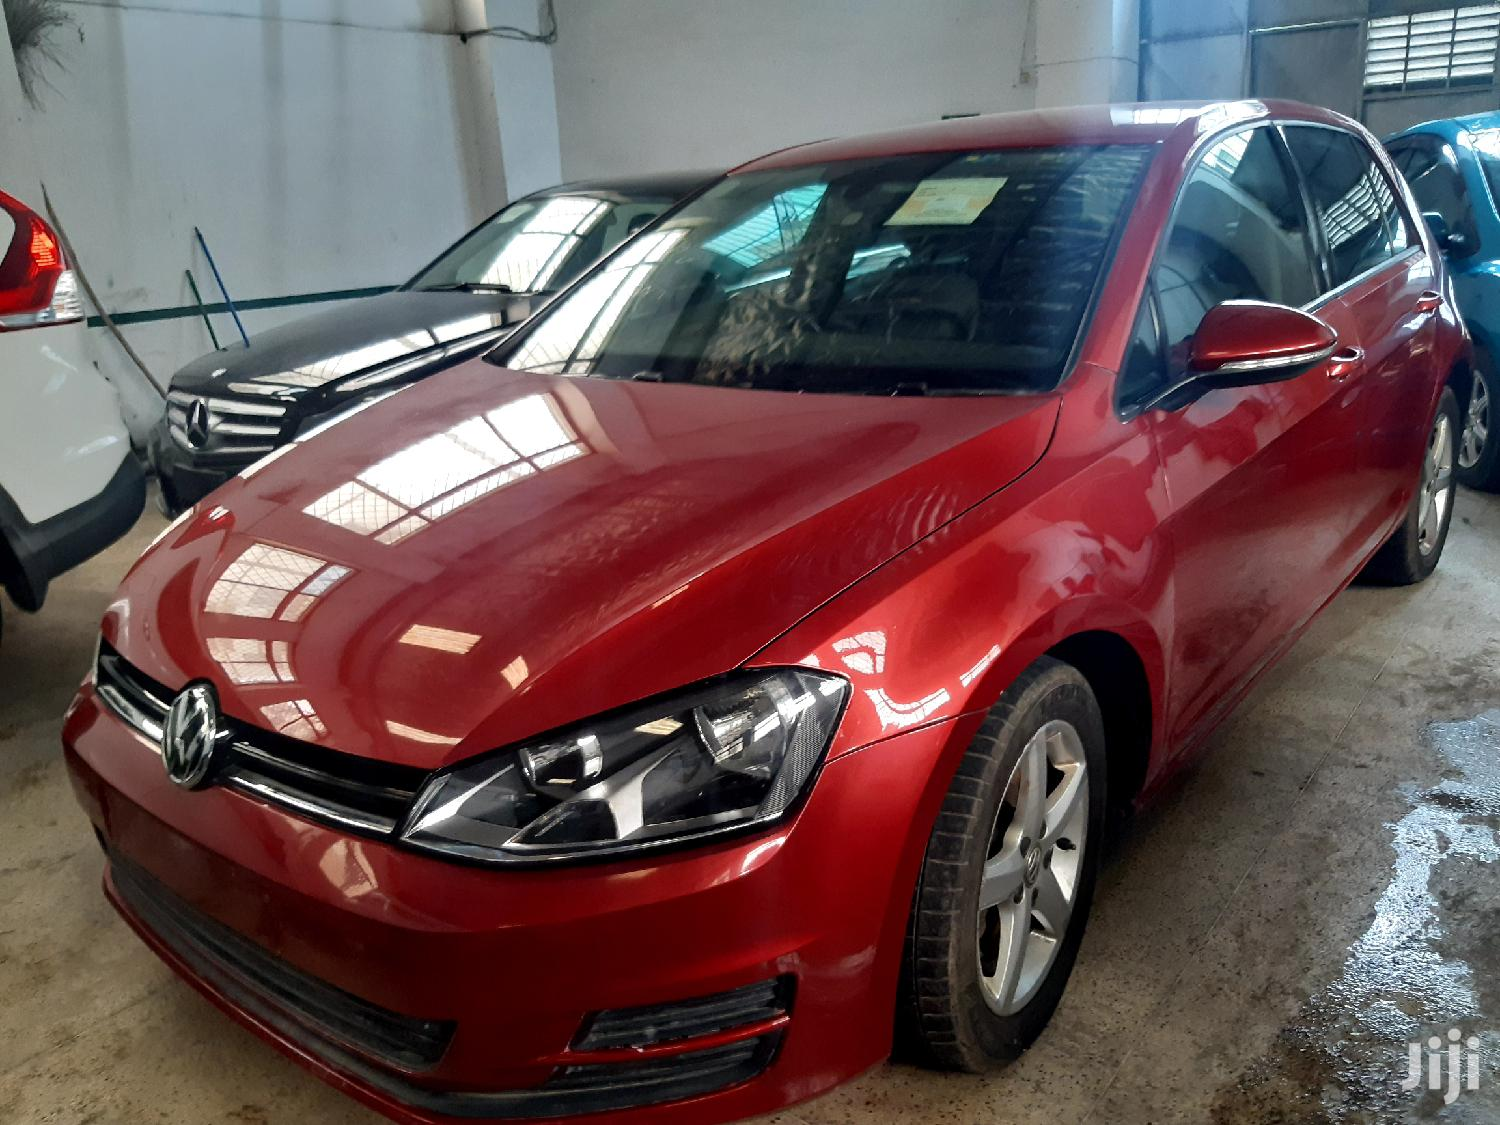 Volkswagen Golf 2013 Red | Cars for sale in Shimanzi/Ganjoni, Mombasa, Kenya